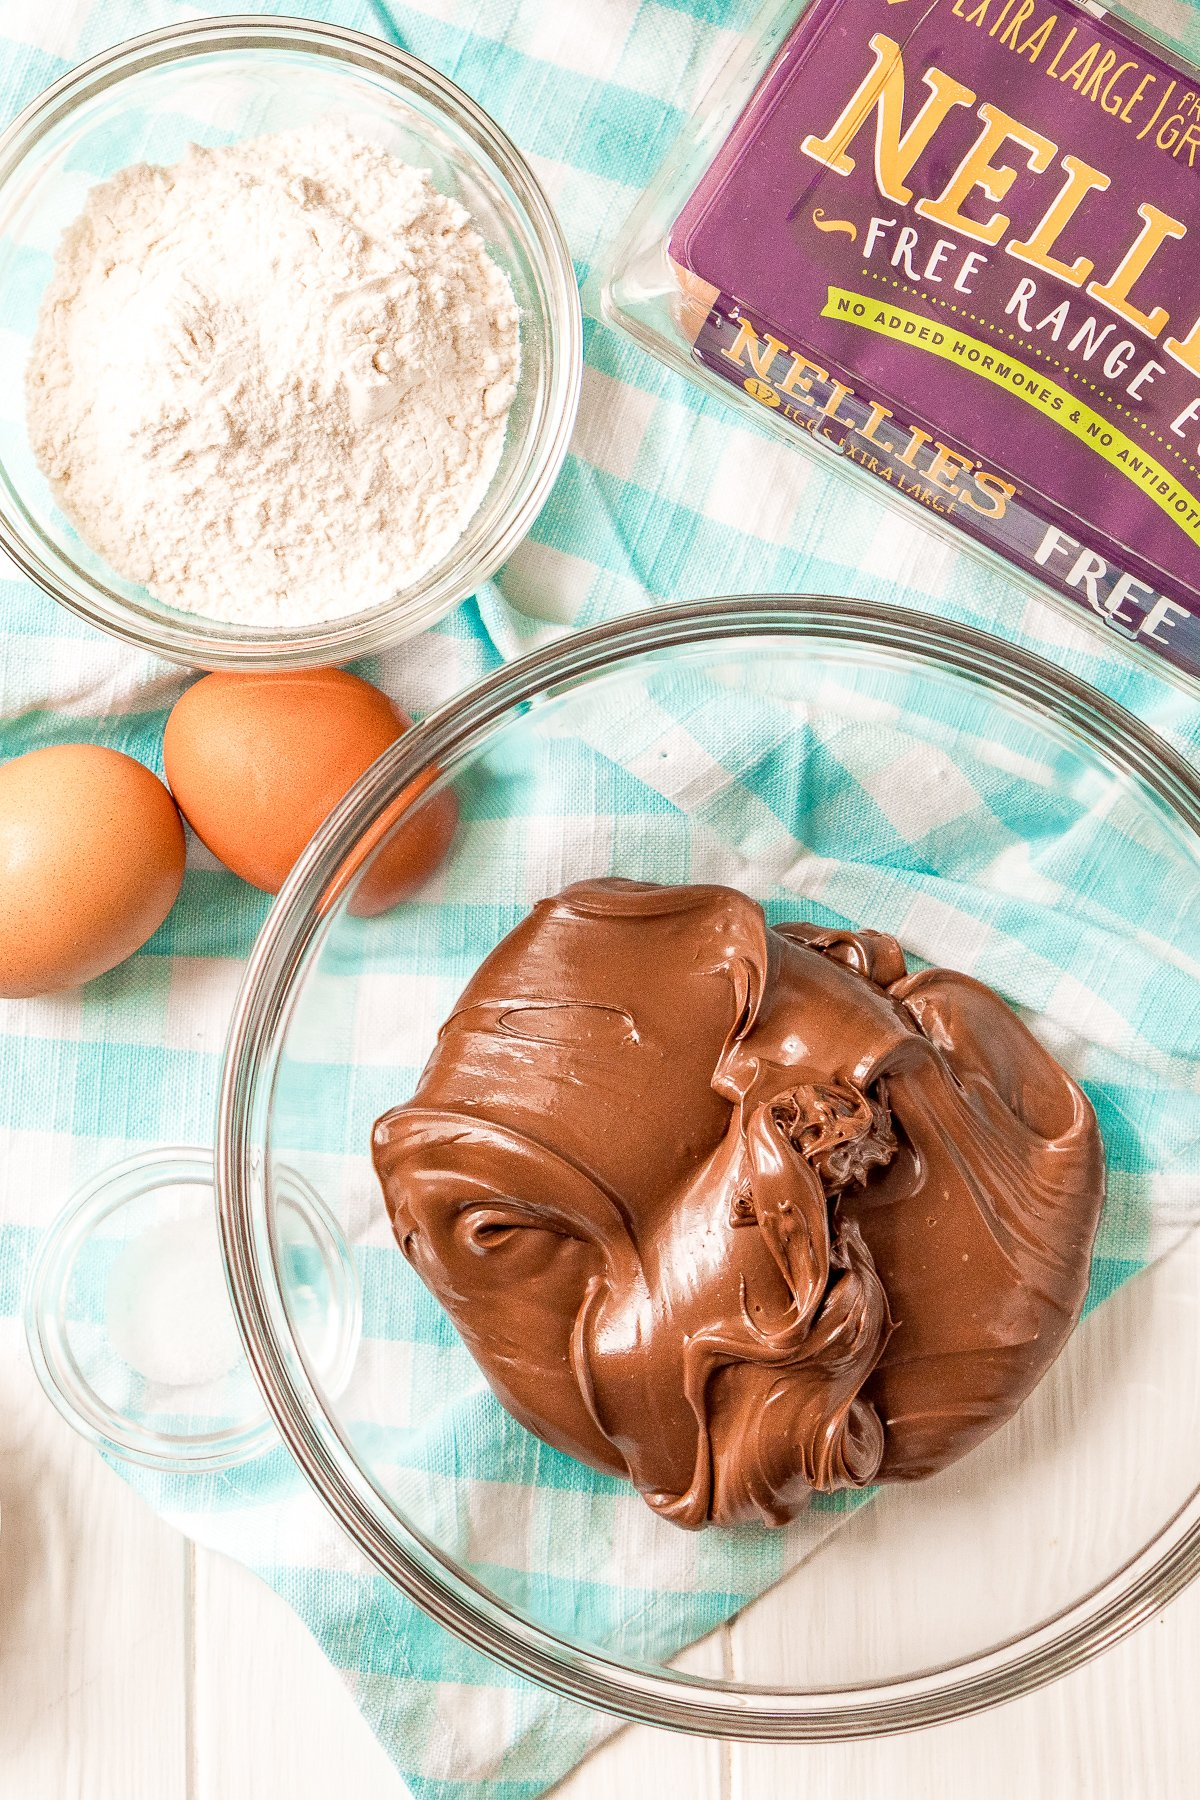 Nutella in a glass bowl with carton of eggs, loose eggs, small bowl of flour and salt on a white and blue napkin.